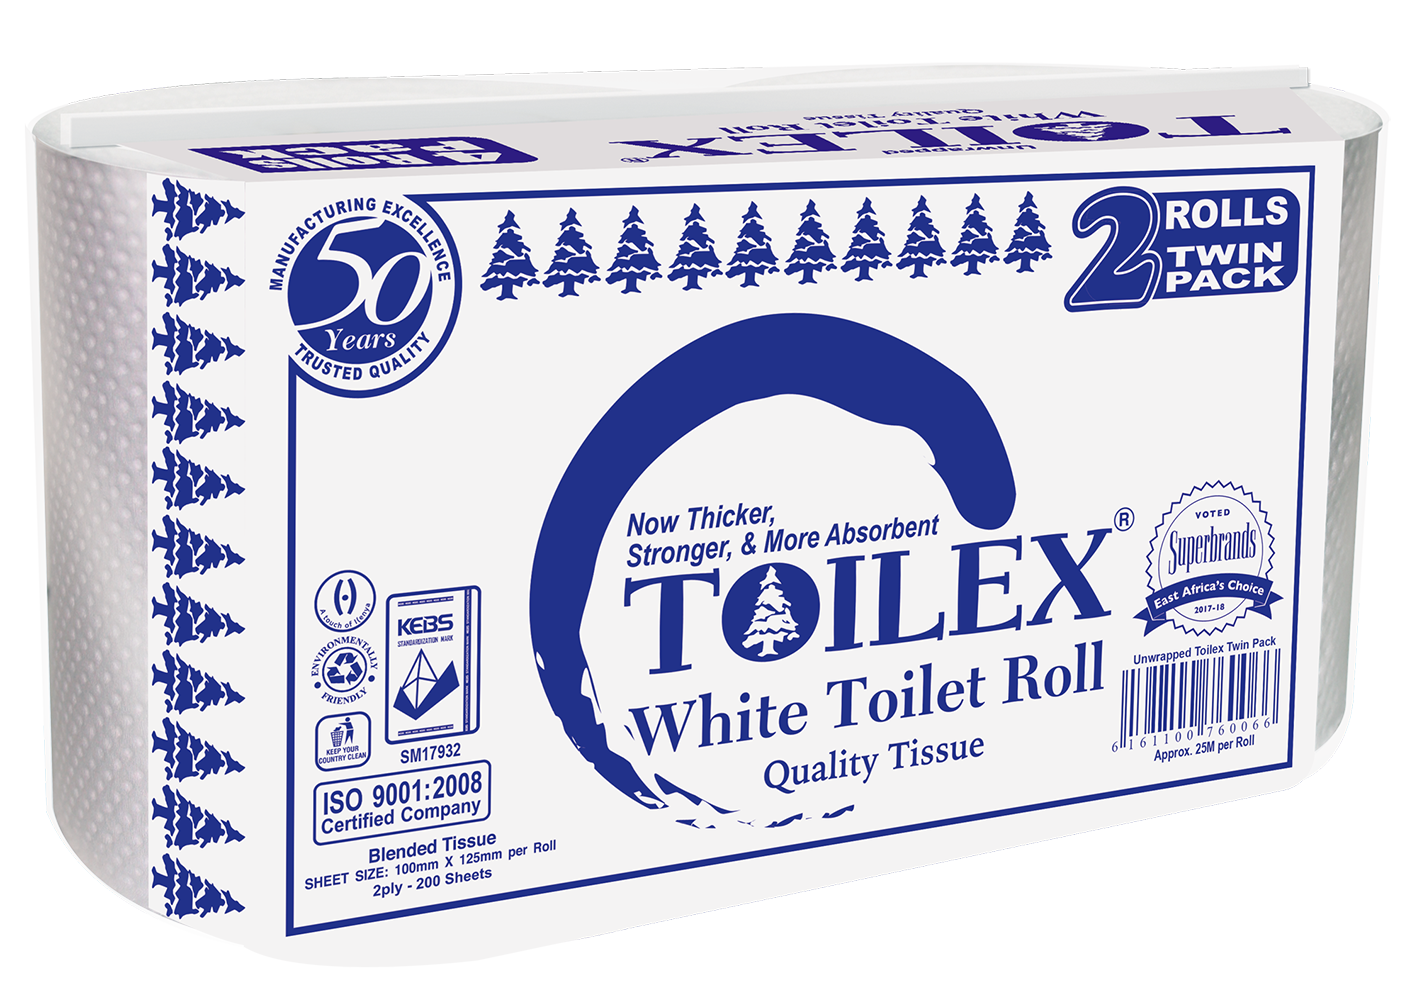 TOILEX-2PACK.png - 10.585.41 kb